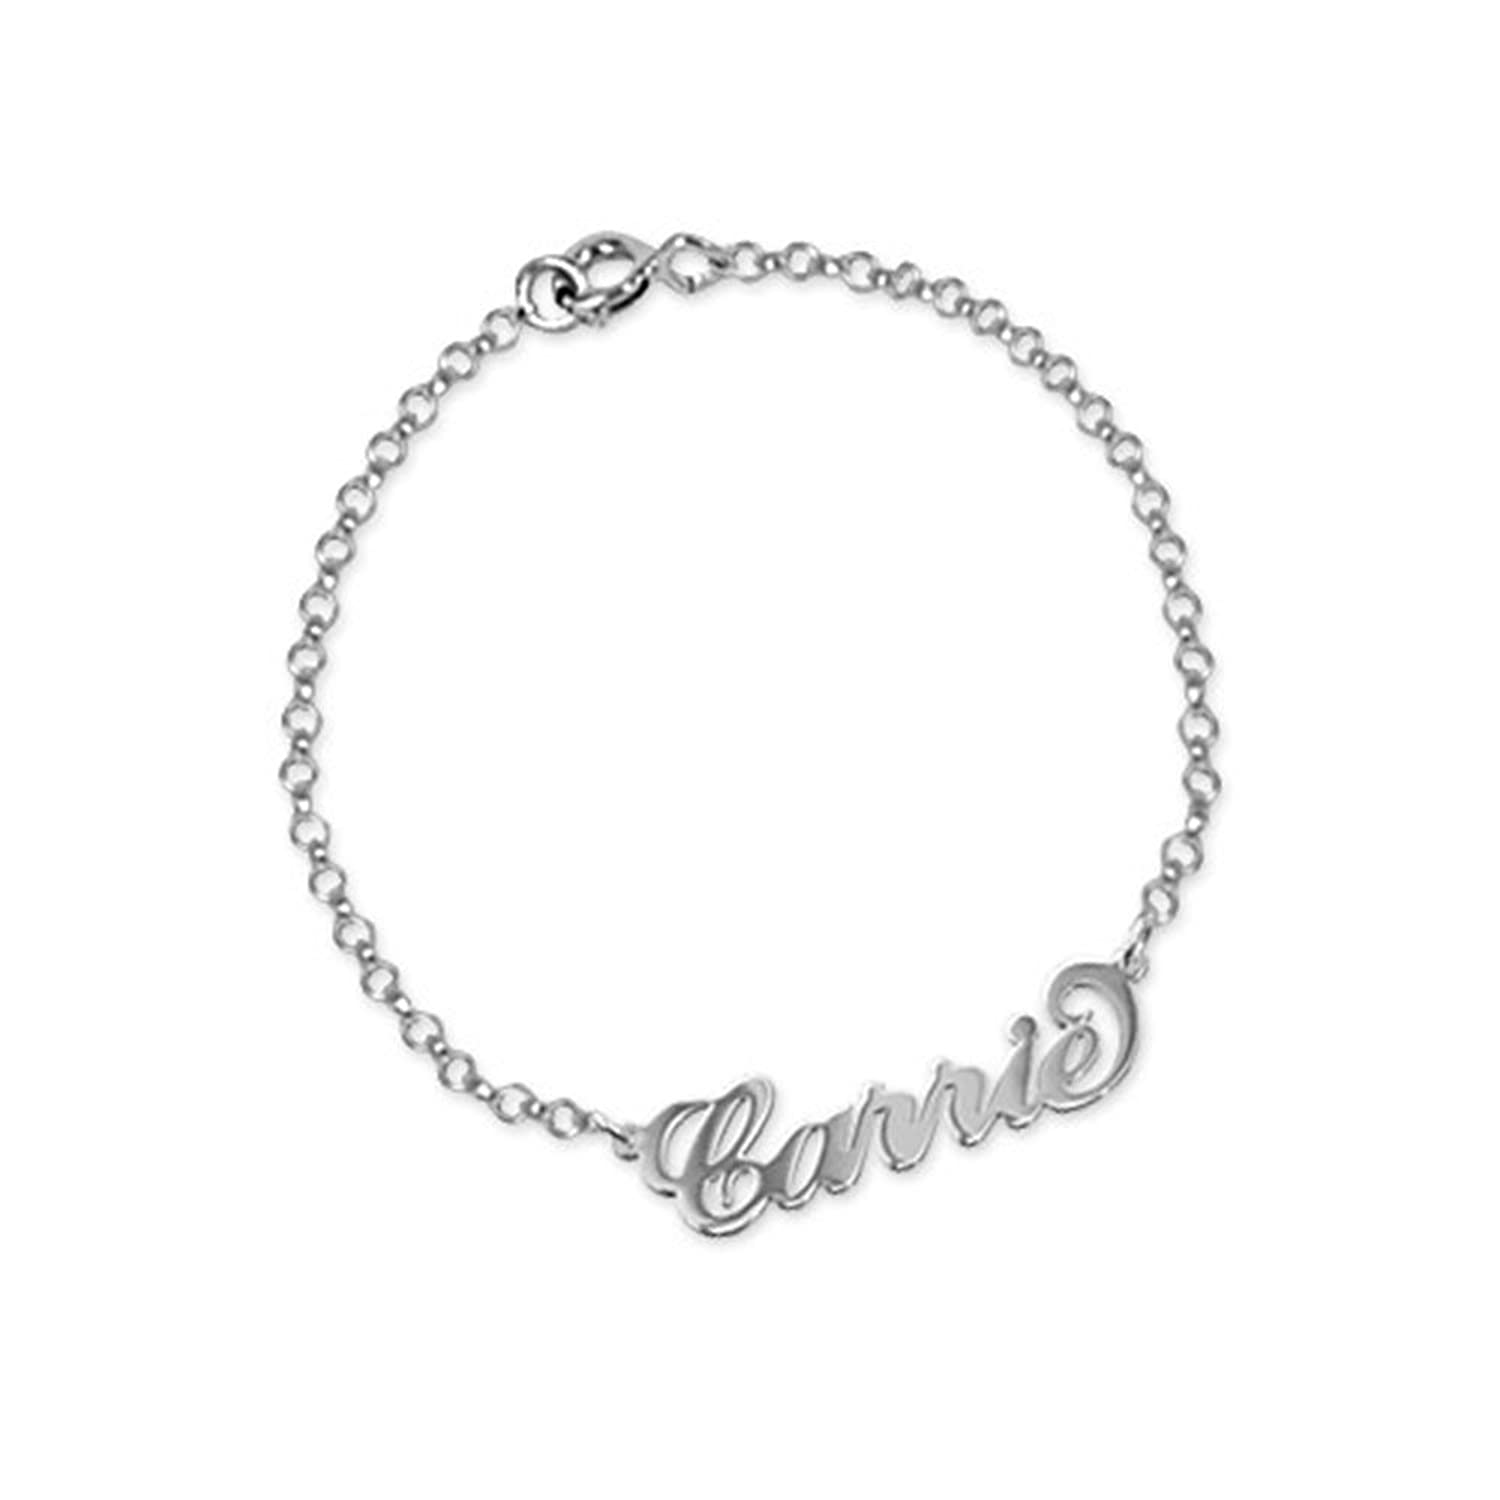 pin jewelry gift for anklet her hand anniversary name personalized stamped